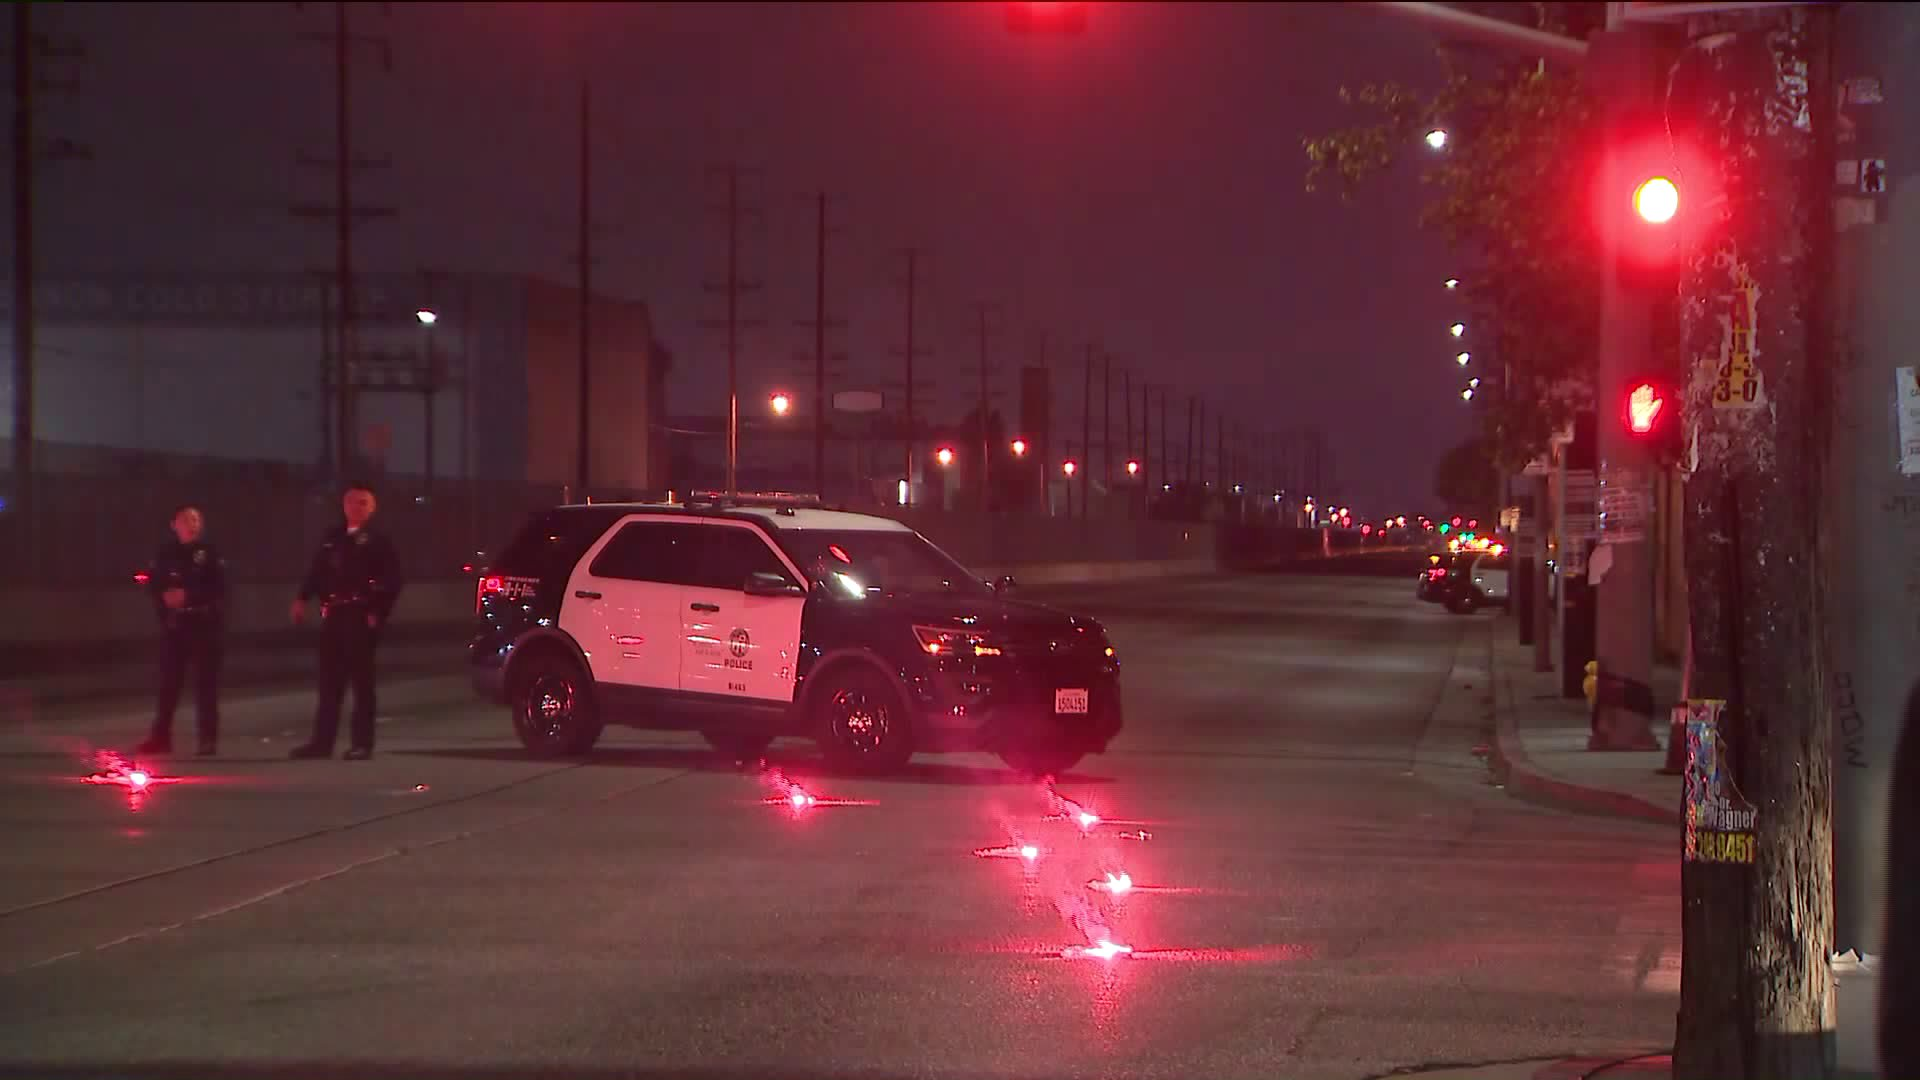 Authorities investigate the scene of a shooting at Long Beach Avenue and 51st Street in South Los Angeles on April 20, 2019. (Credit: KTLA)